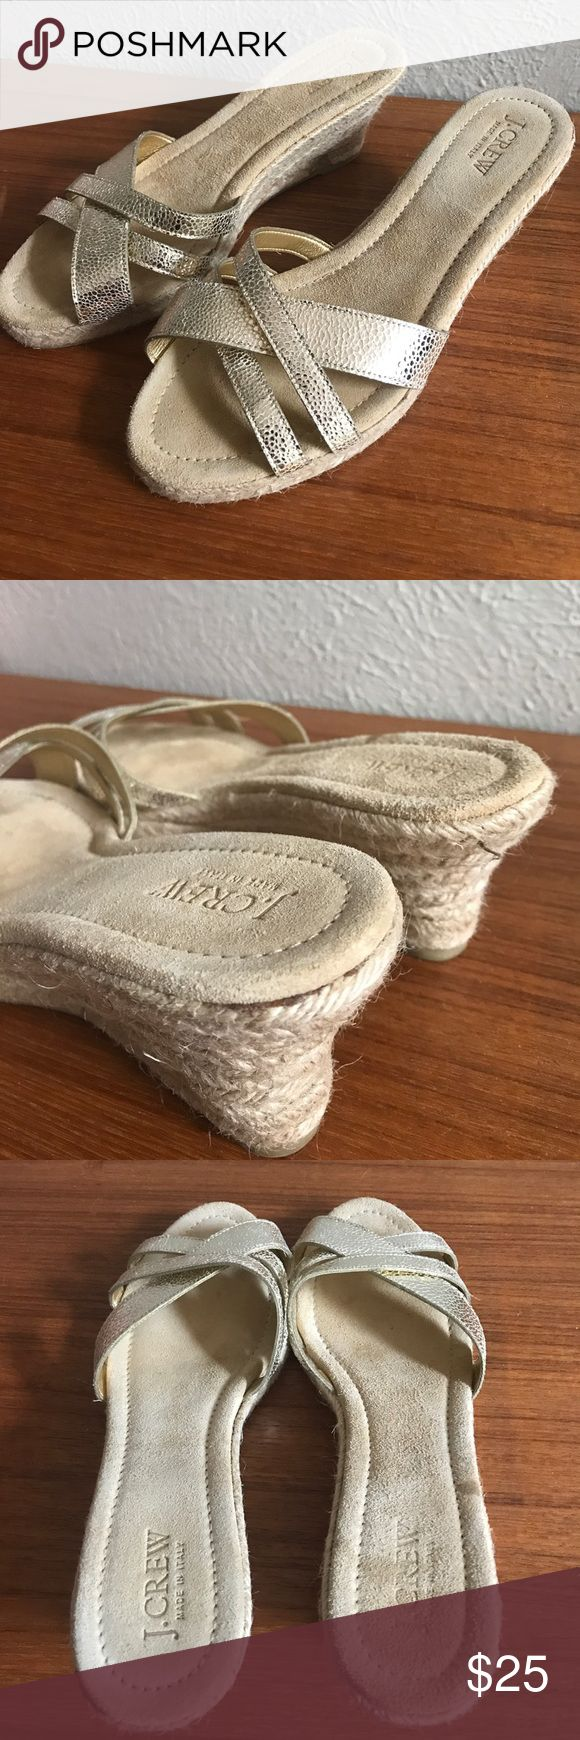 J. Crew metallic espadrilles wedges Pretty shoes in good used condition.  Marks on. Ottoman Of sole.  Perfect for a wedding, comfy and cute J. Crew Shoes Wedges